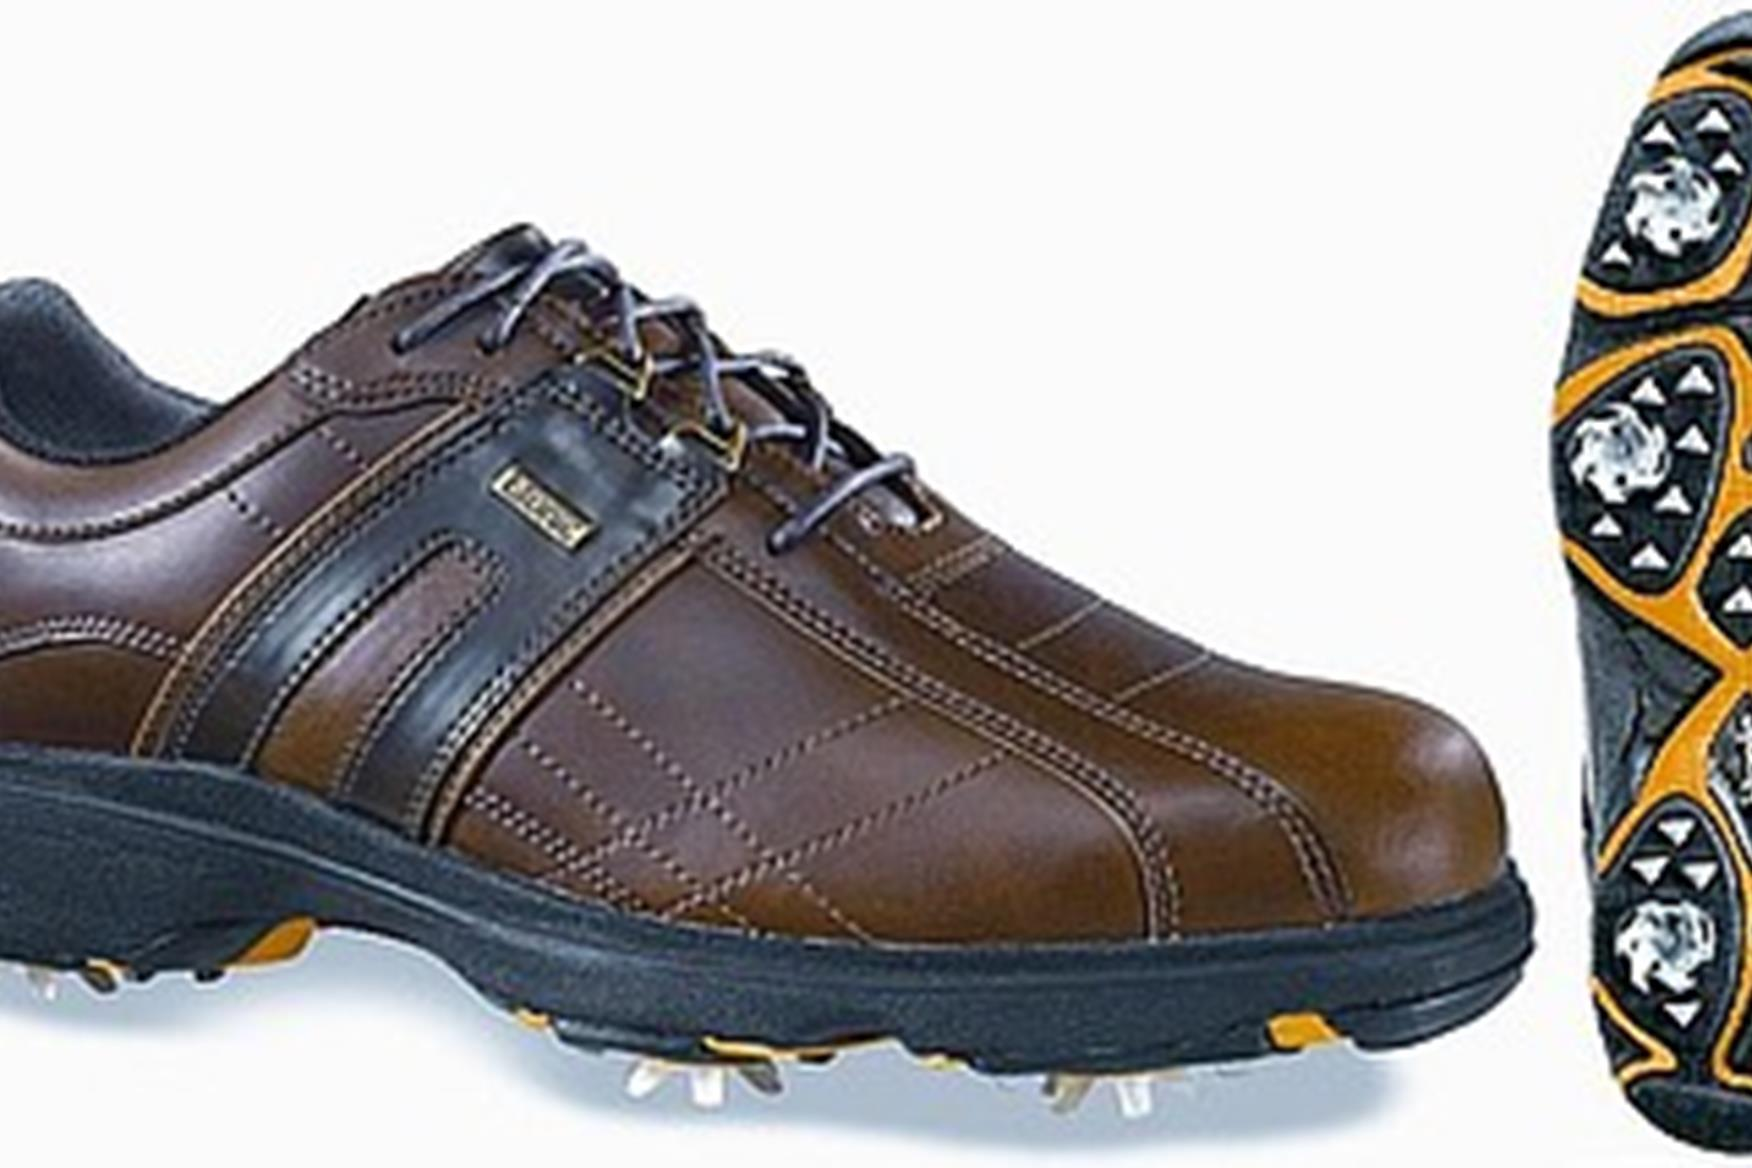 Etonic Golf Shoes Reviews | Today's Golfer